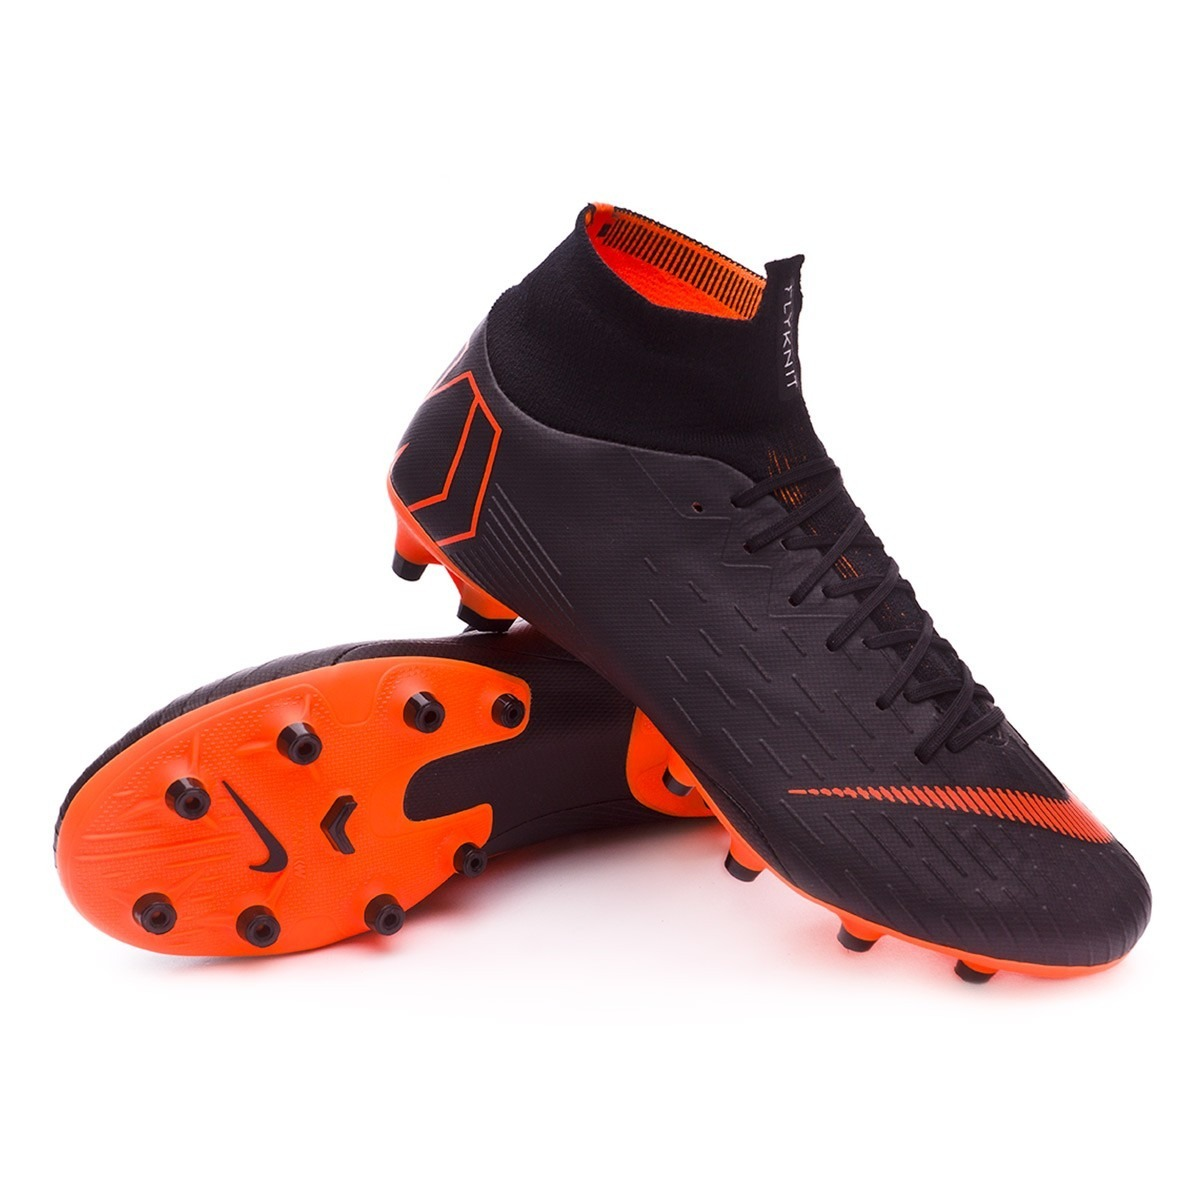 outlet store 5e339 3d736 Tacos Taquetes Nike Mercurial Superfly Vl Pro Fg 360 Oferta